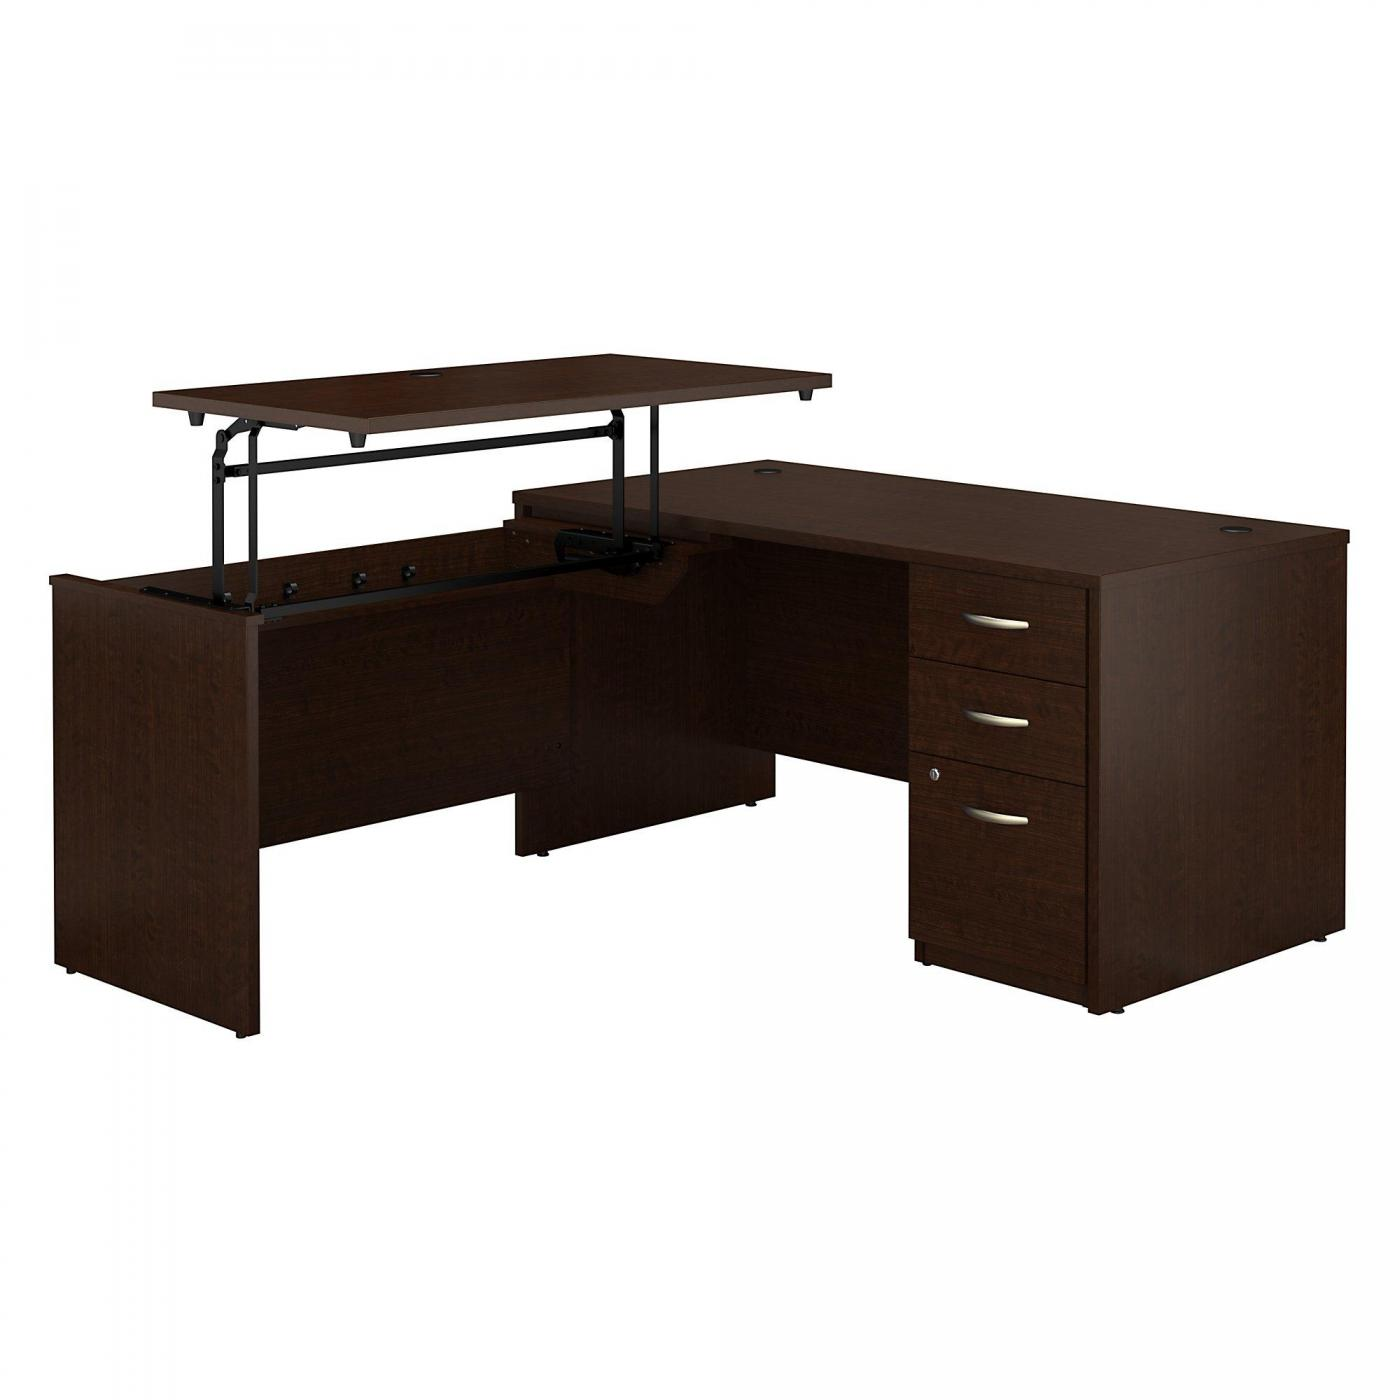 <font color=#c60><b>BUSH BUSINESS FURNITURE SERIES C ELITE 60W X 30D 3 POSITION SIT TO STAND L SHAPED DESK WITH 3 DRAWER FILE CABINET. FREE SHIPPING. VIDEO:</font></b>